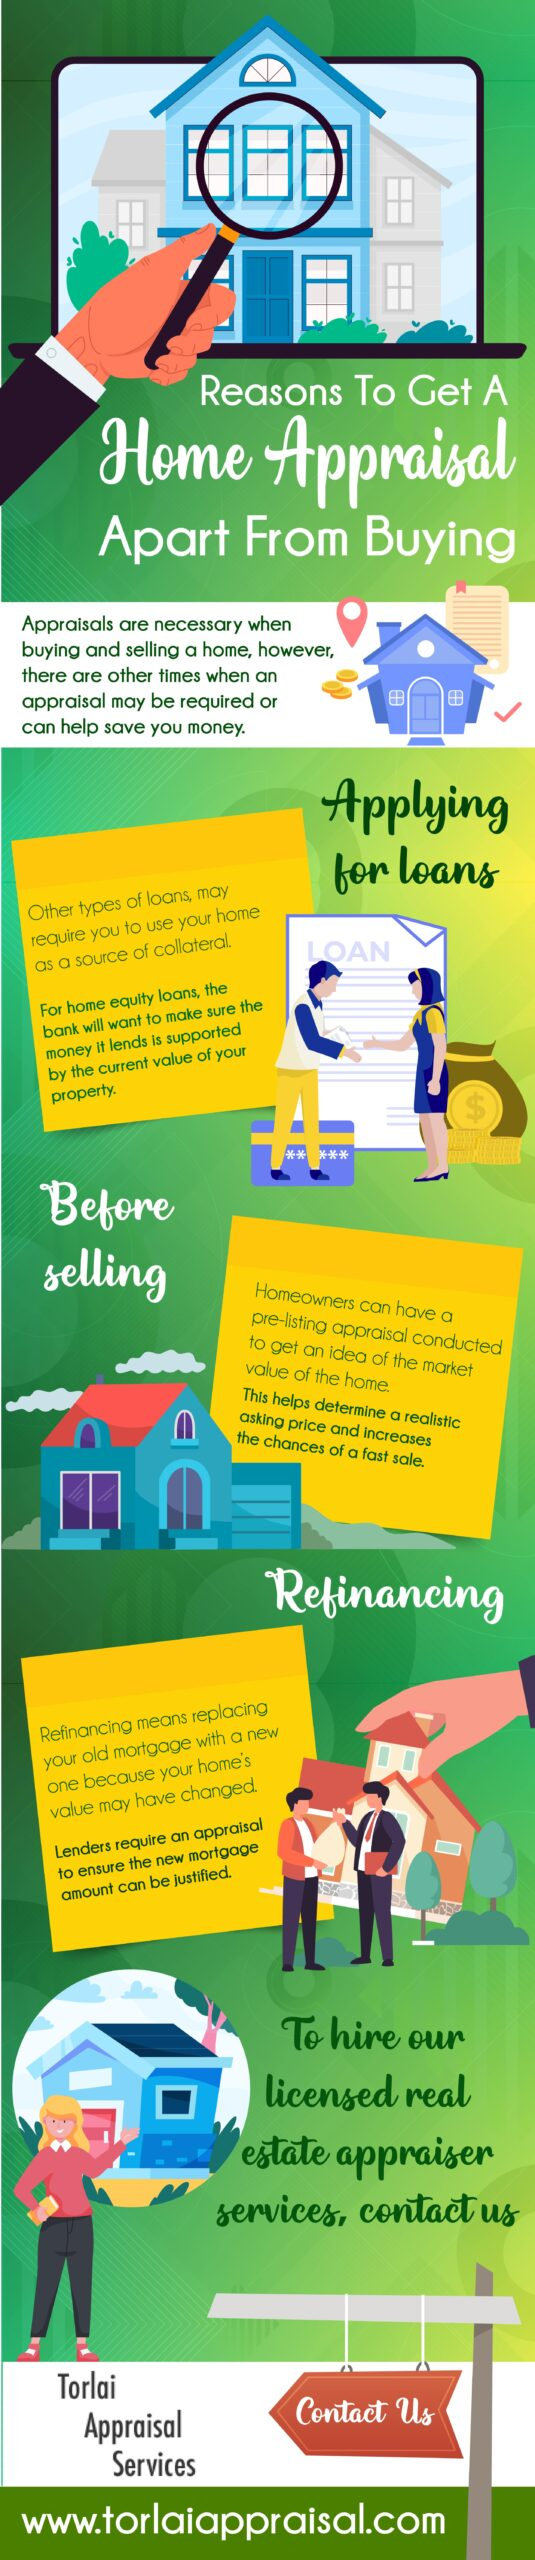 reasons to get a home appaisal apart from buying-compressed